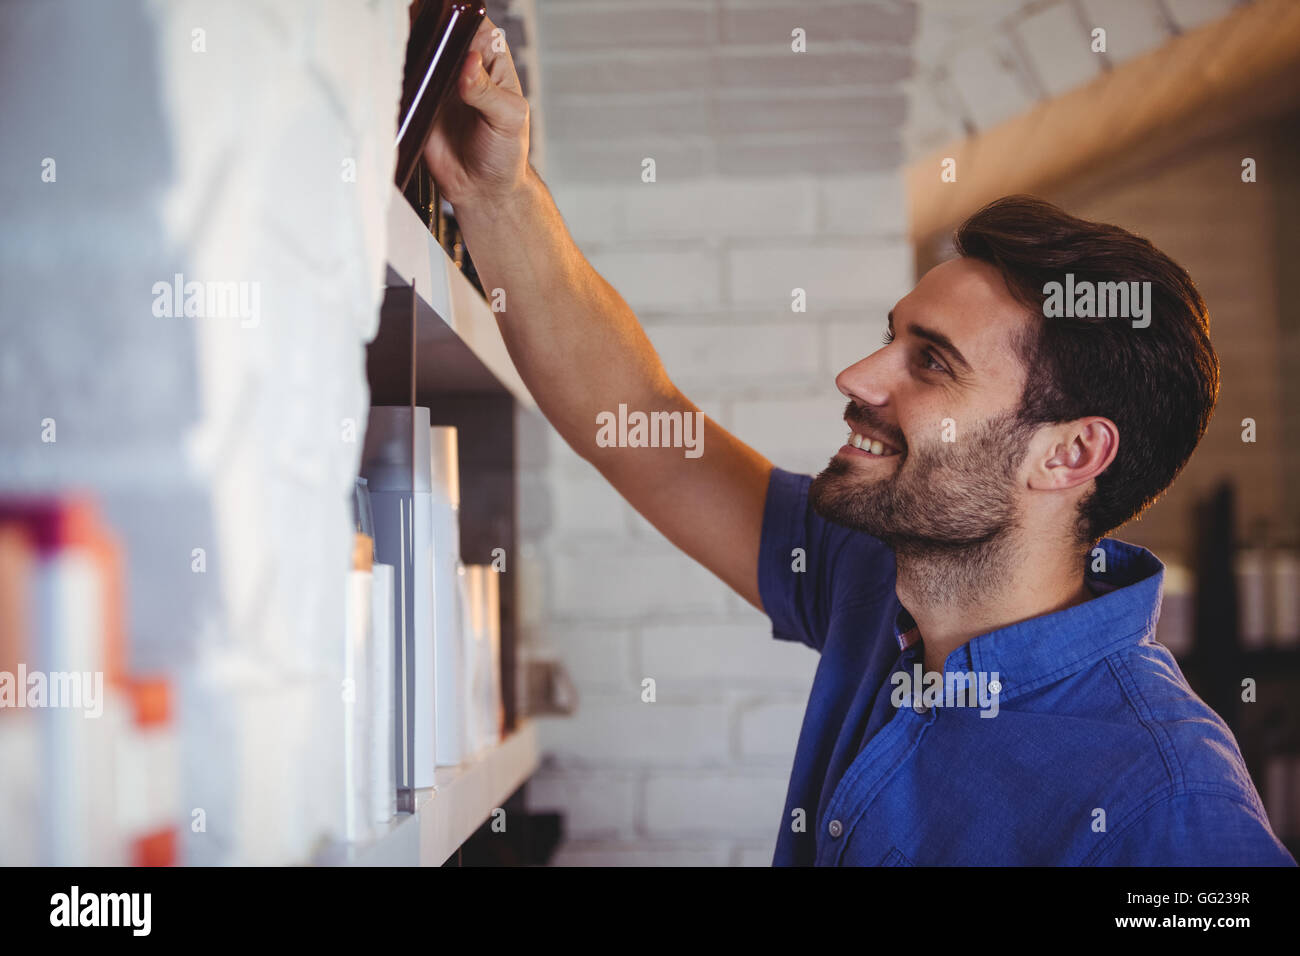 Male hair dresser selecting shampoo from shelf - Stock Image